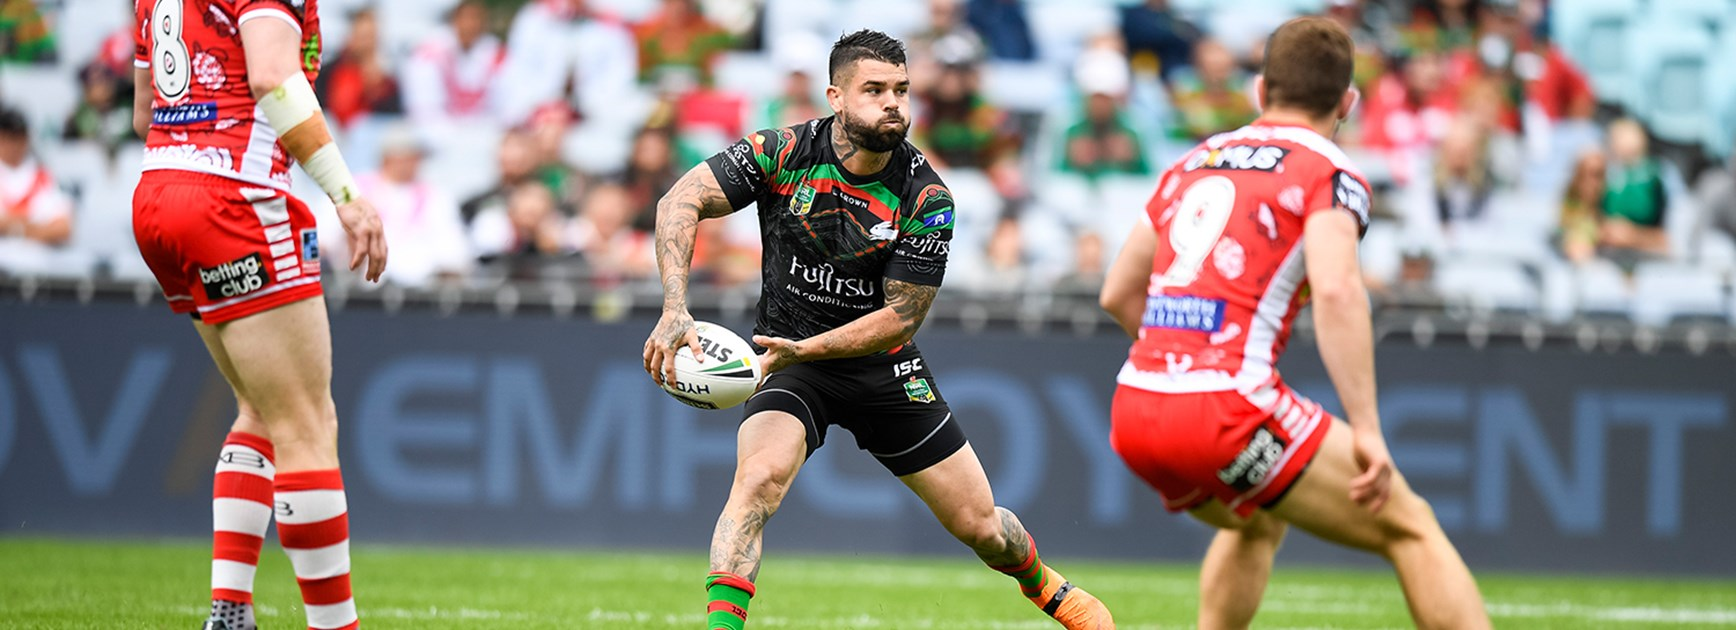 Stat Attack: Where Souths hold slight advantage over Dragons